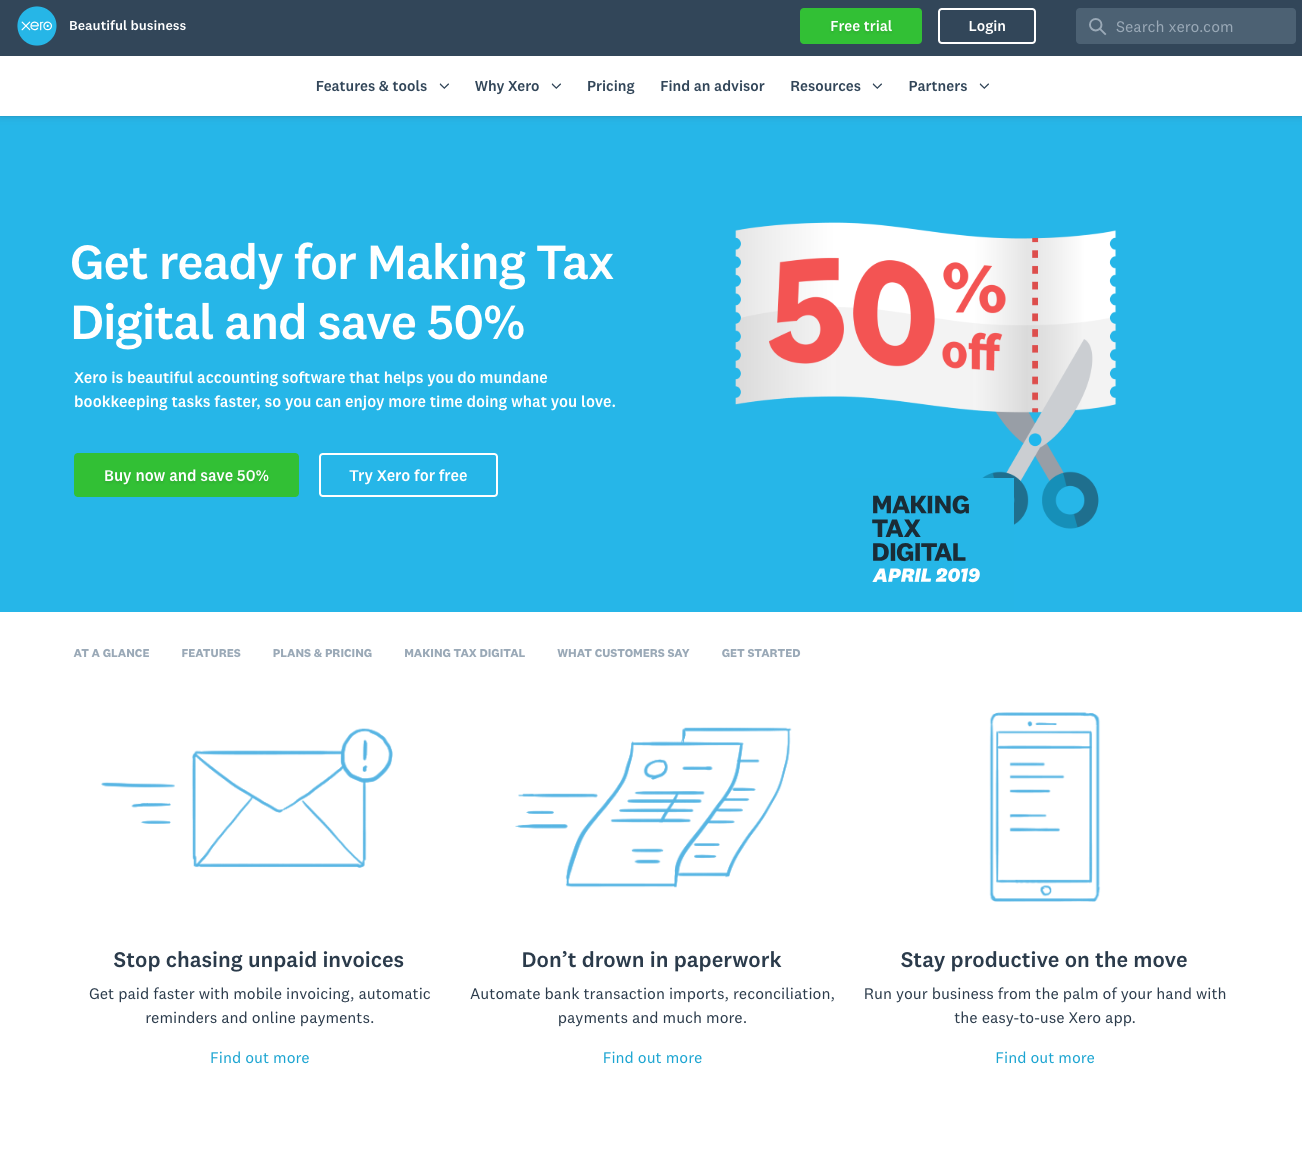 xero website showcasing the promotions and features